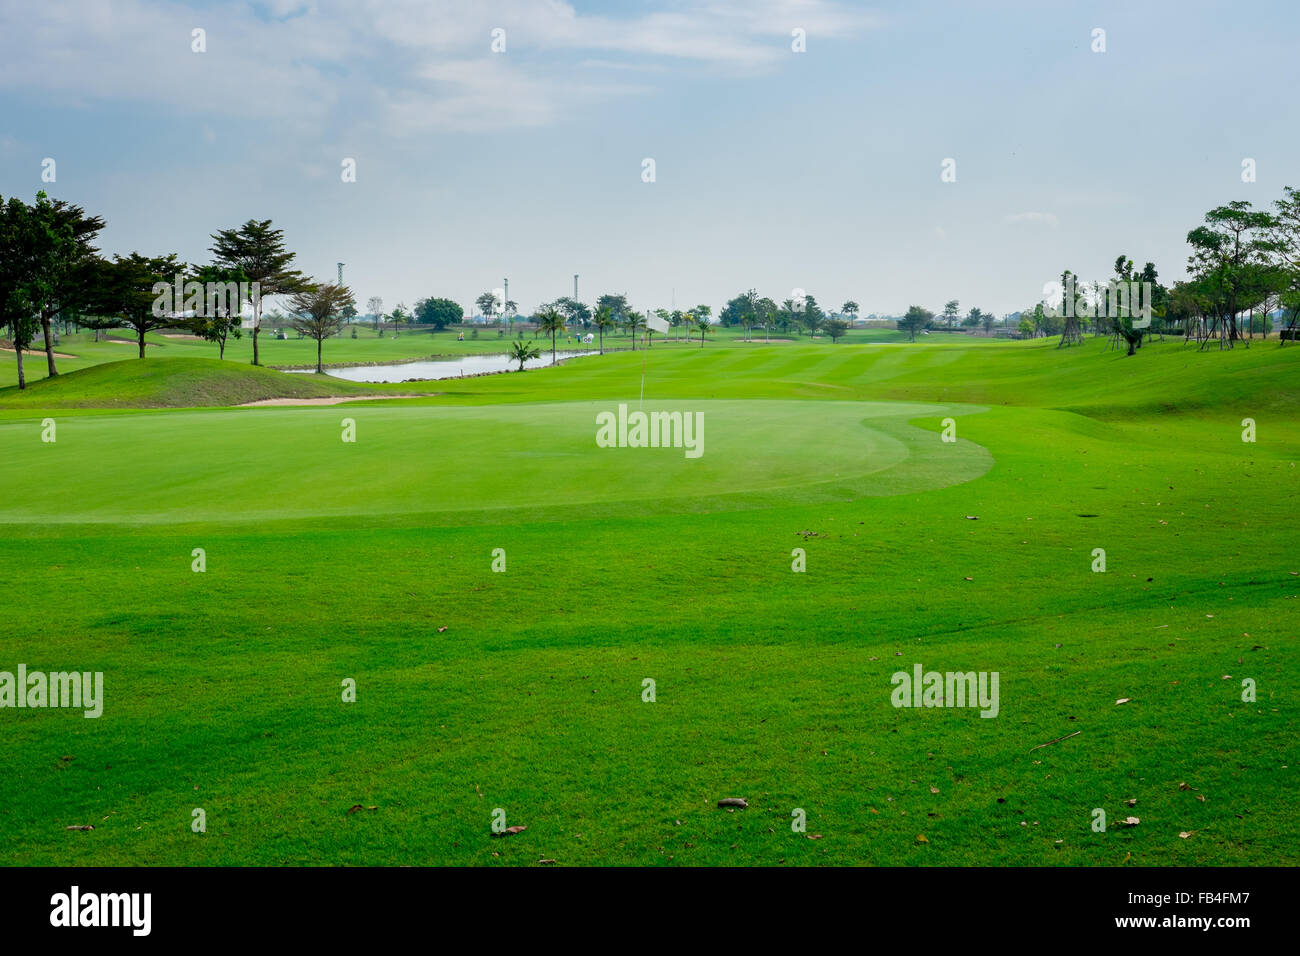 Beautiful Golf Course High Resolution Stock Photography And Images Alamy